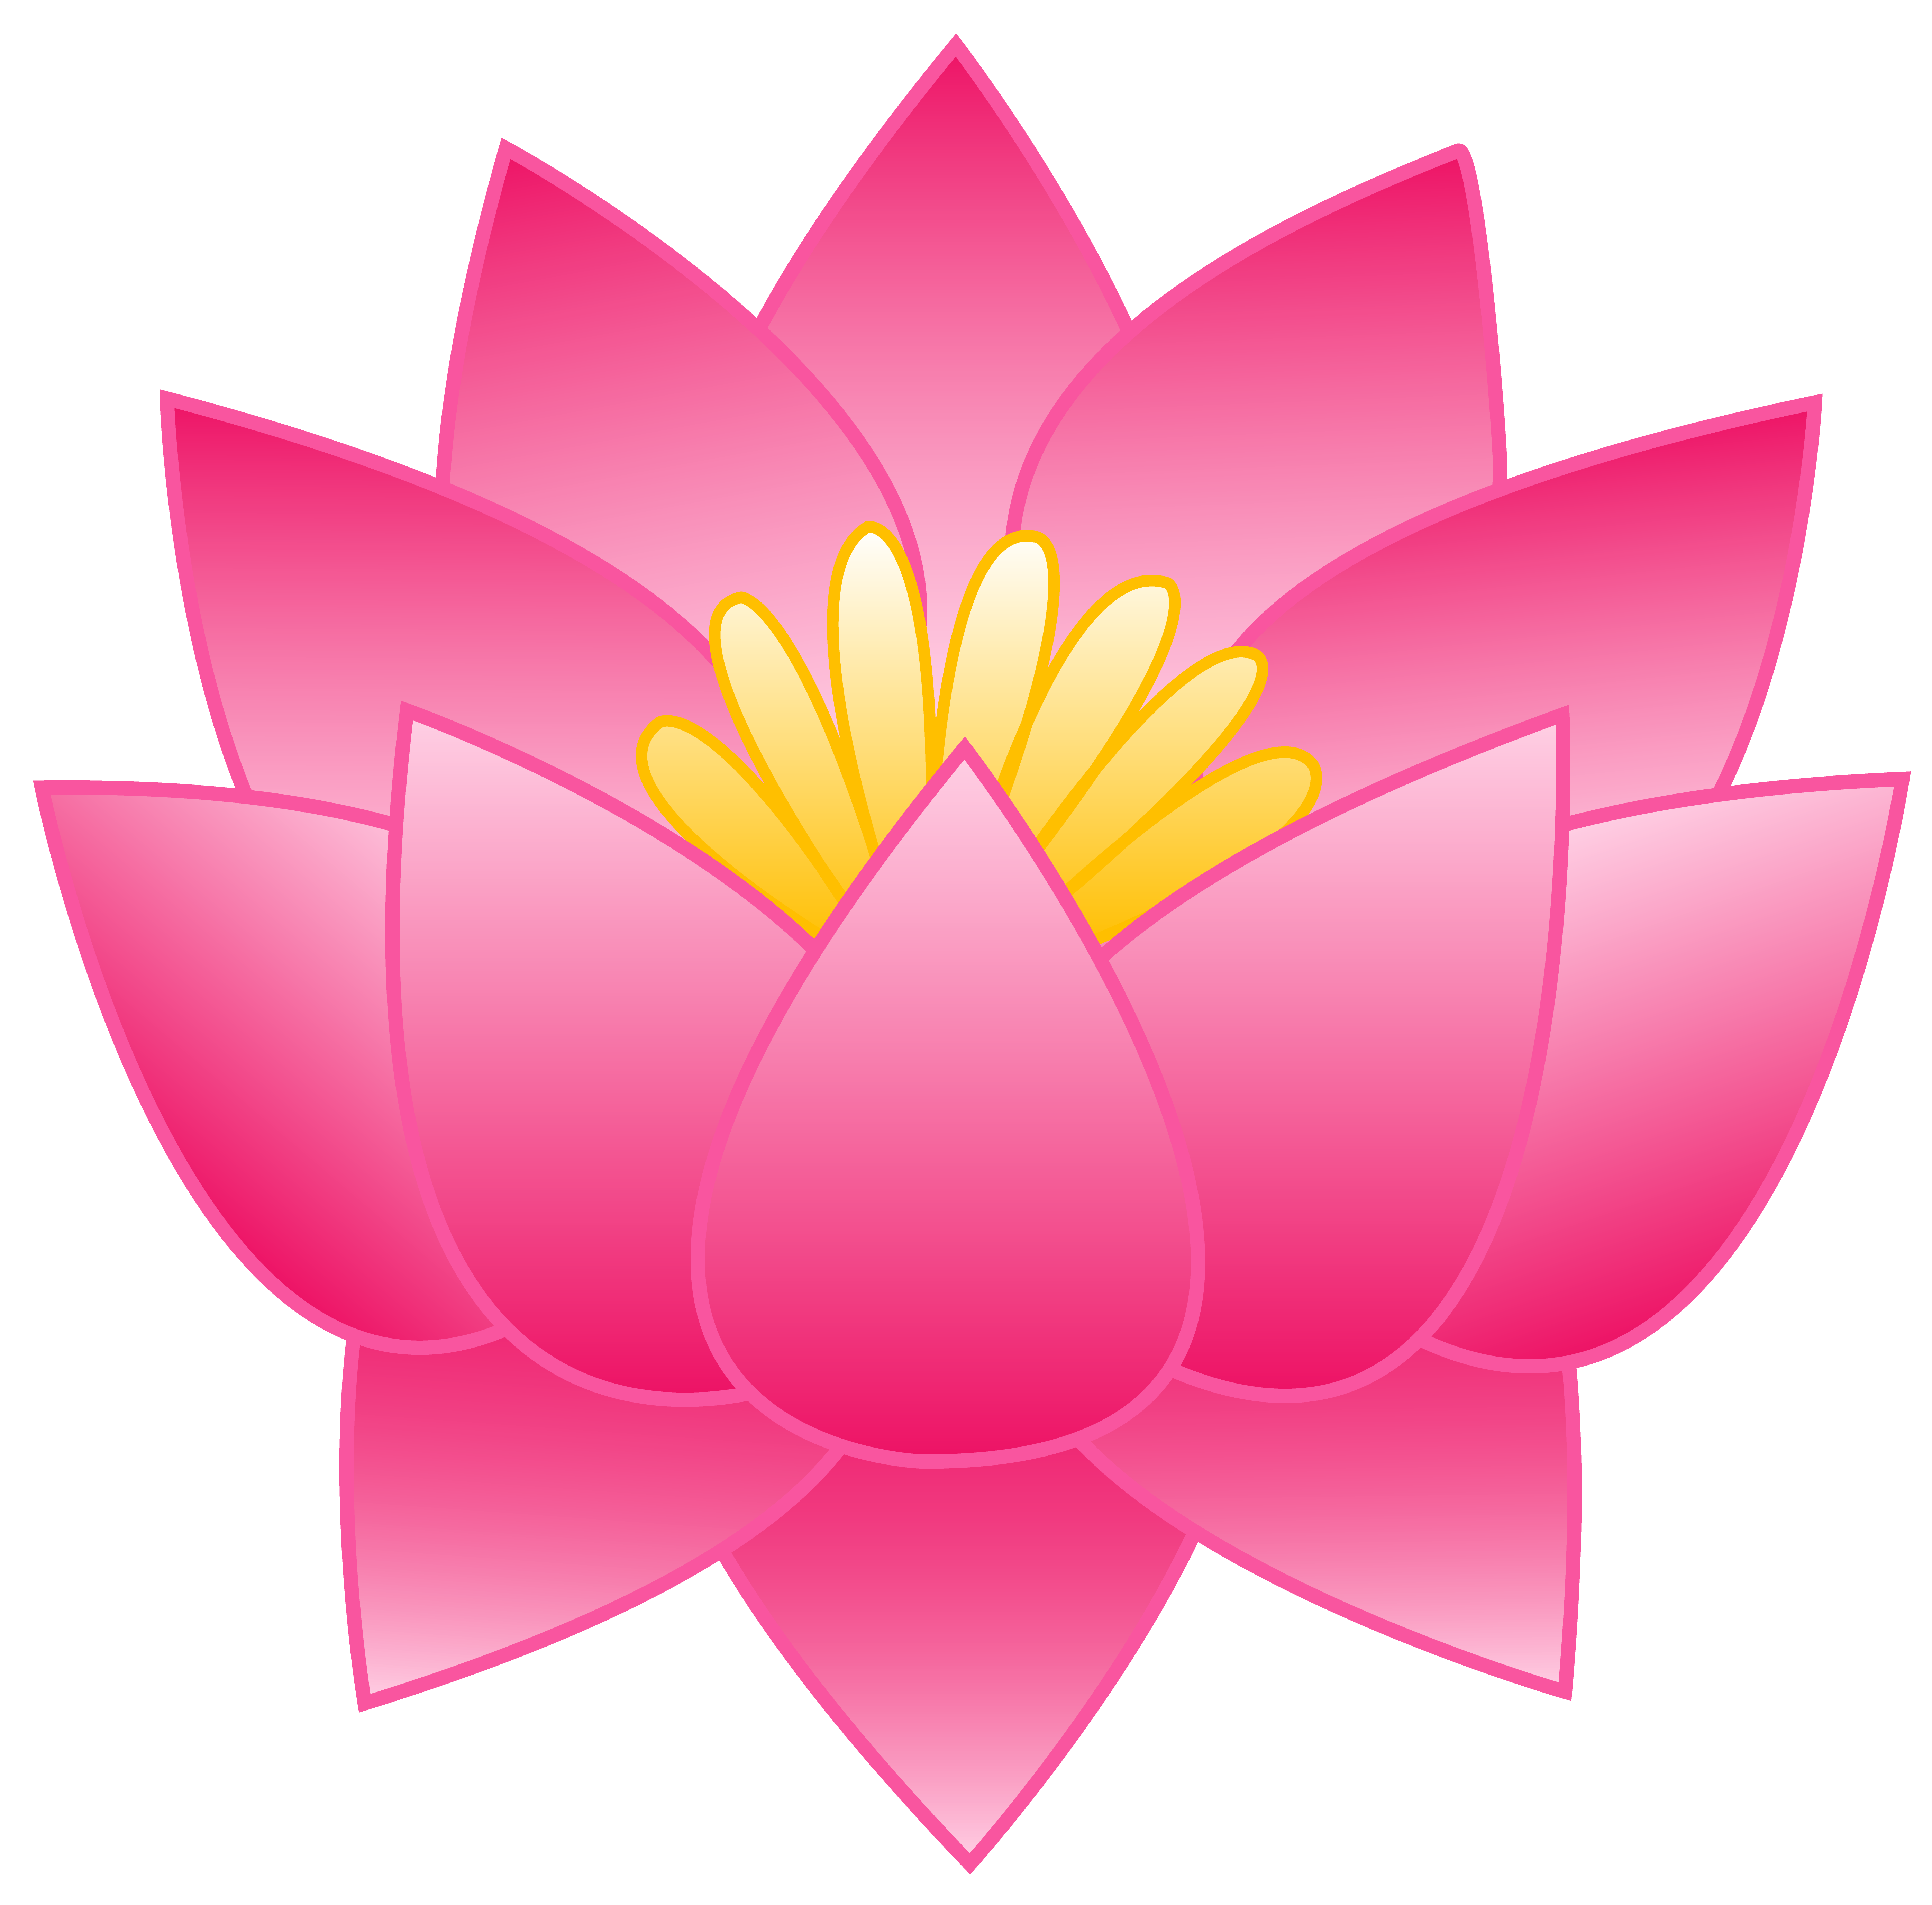 Lotus flower graphic png. Clipart